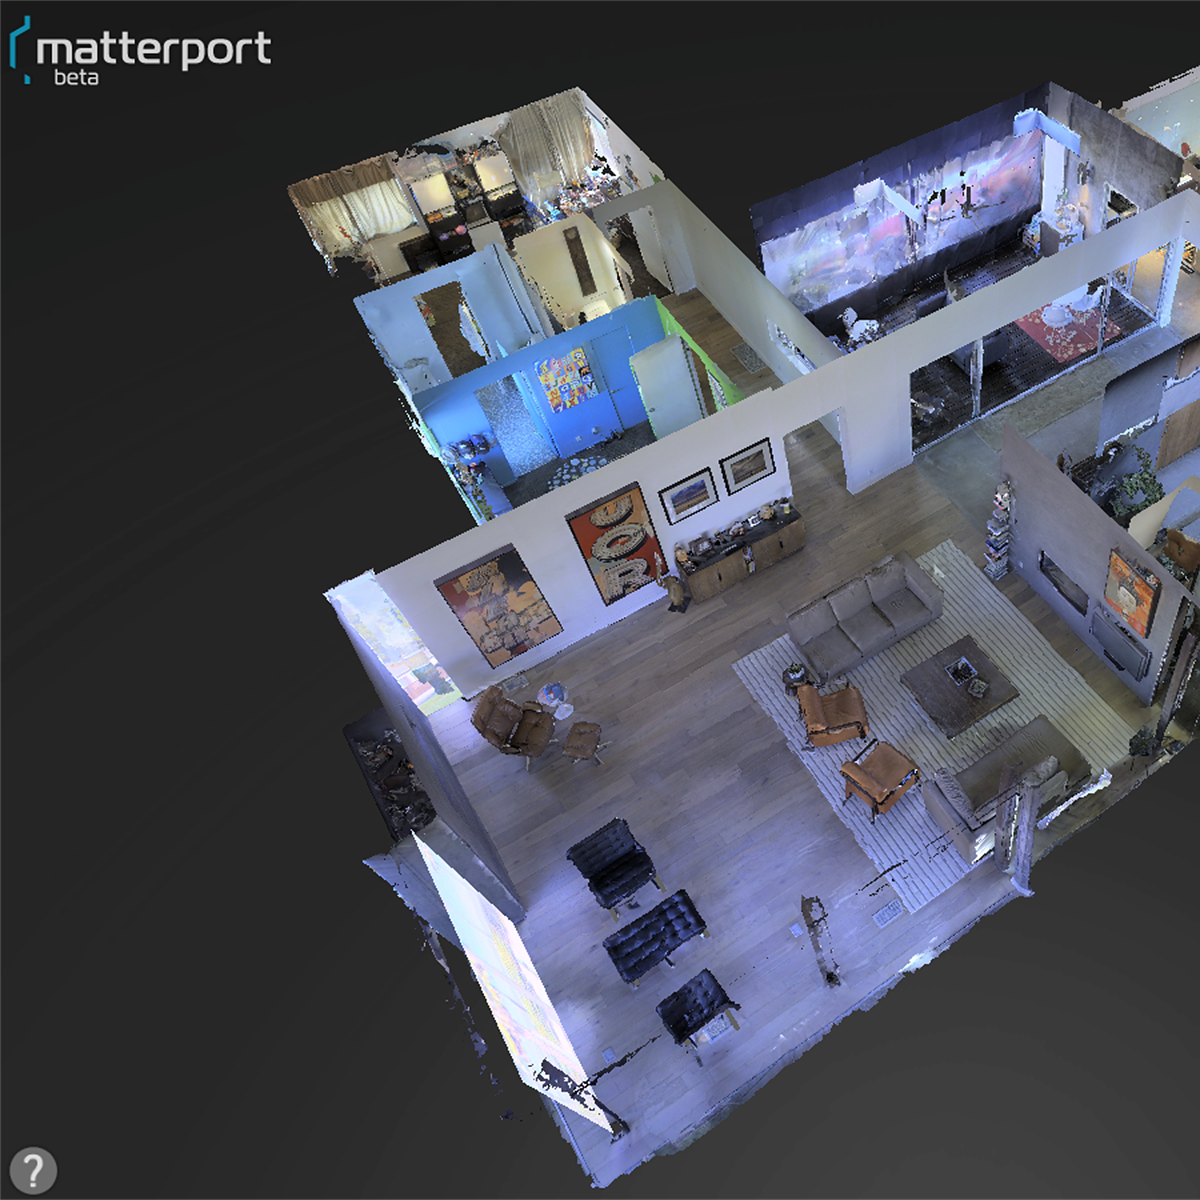 Matterport announces 3D Showcase feature: Digital